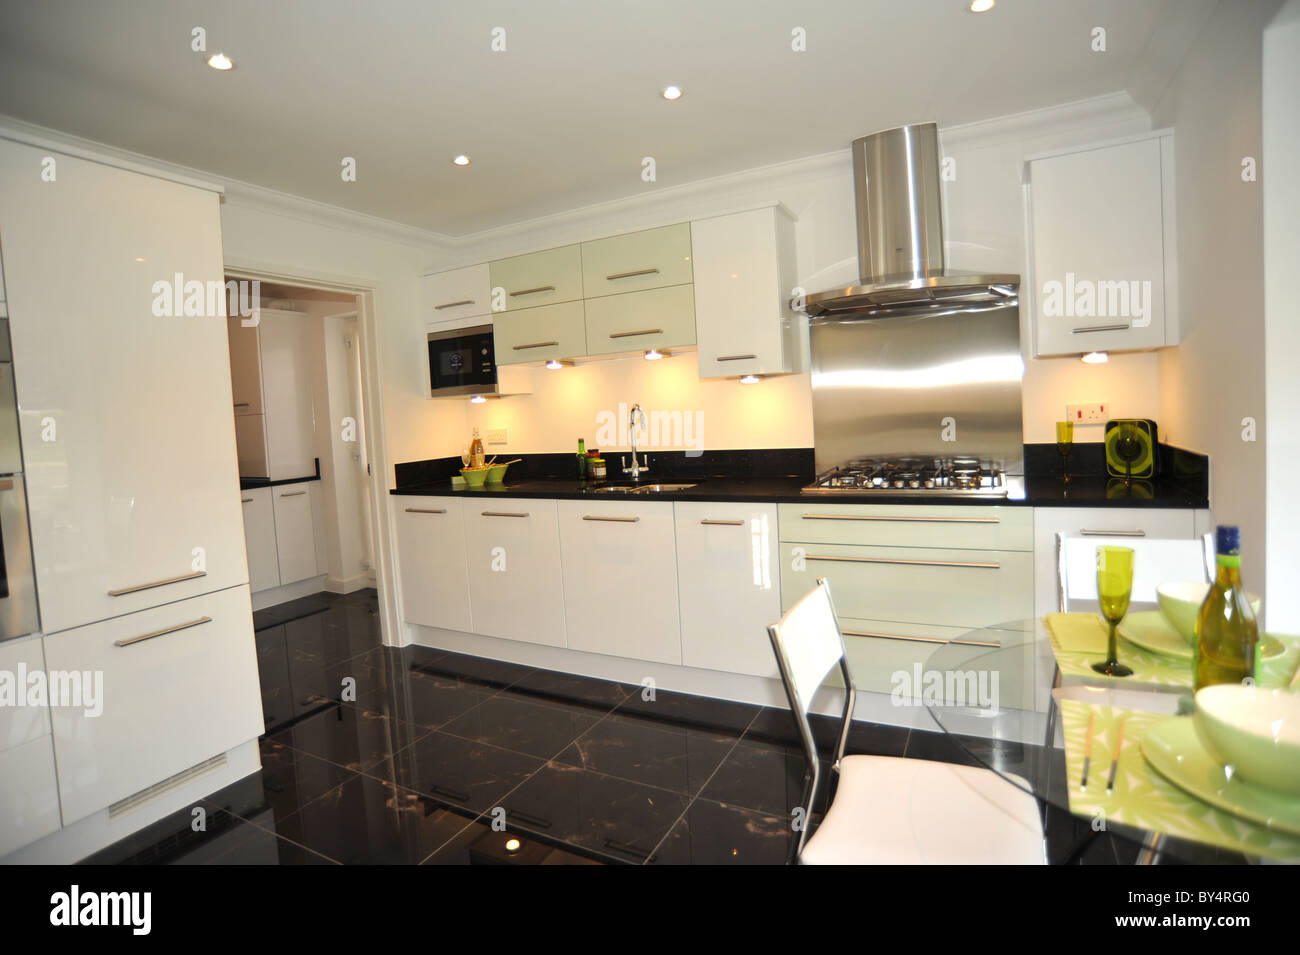 Typical Taylor Wimpey Showhome | Future house | Pinterest ...